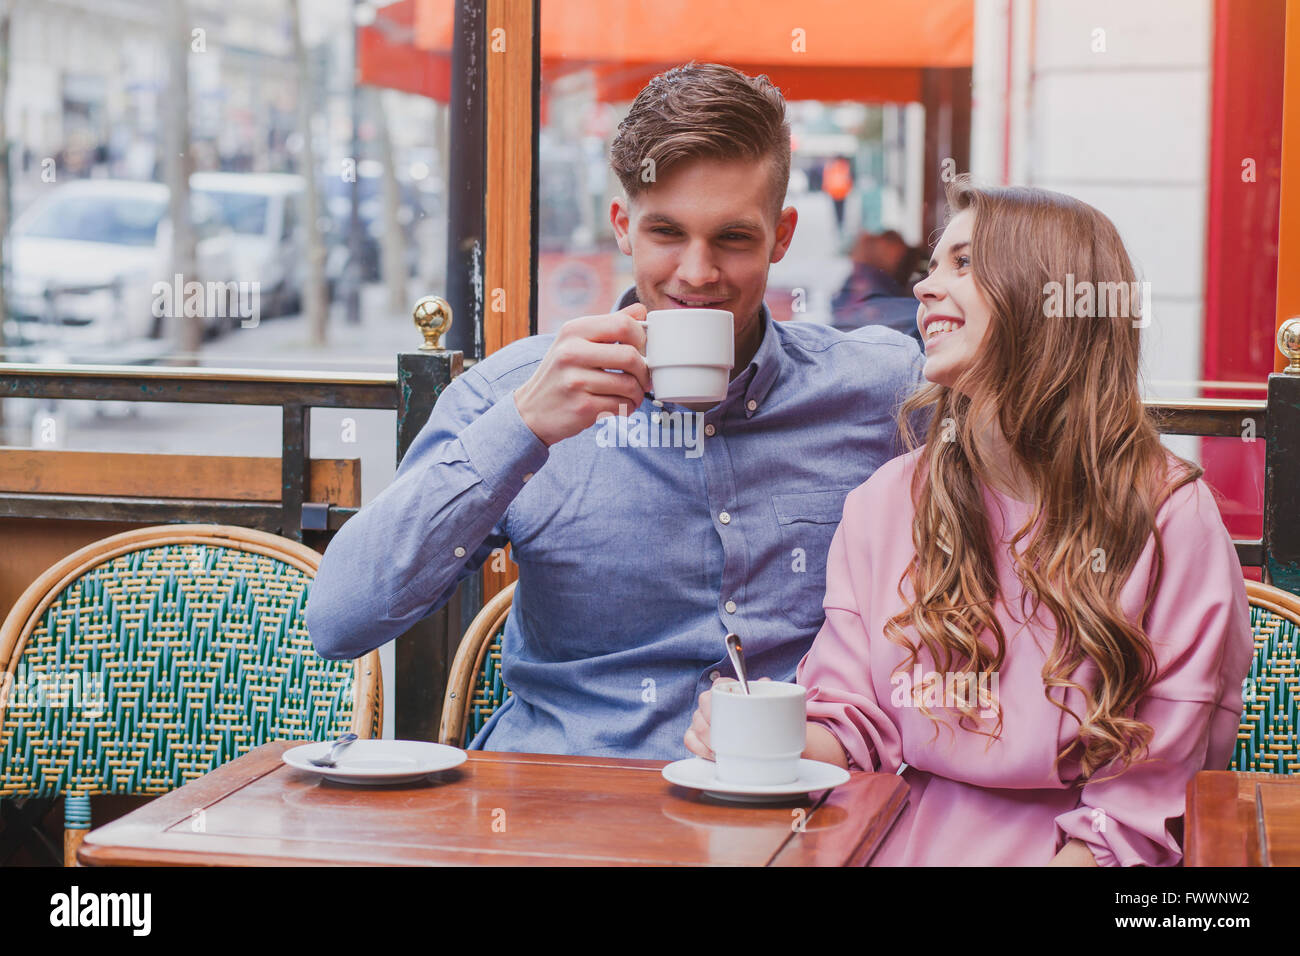 young happy couple drinking coffee and laughing in cafe in Europe, dating, good positive moments - Stock Image